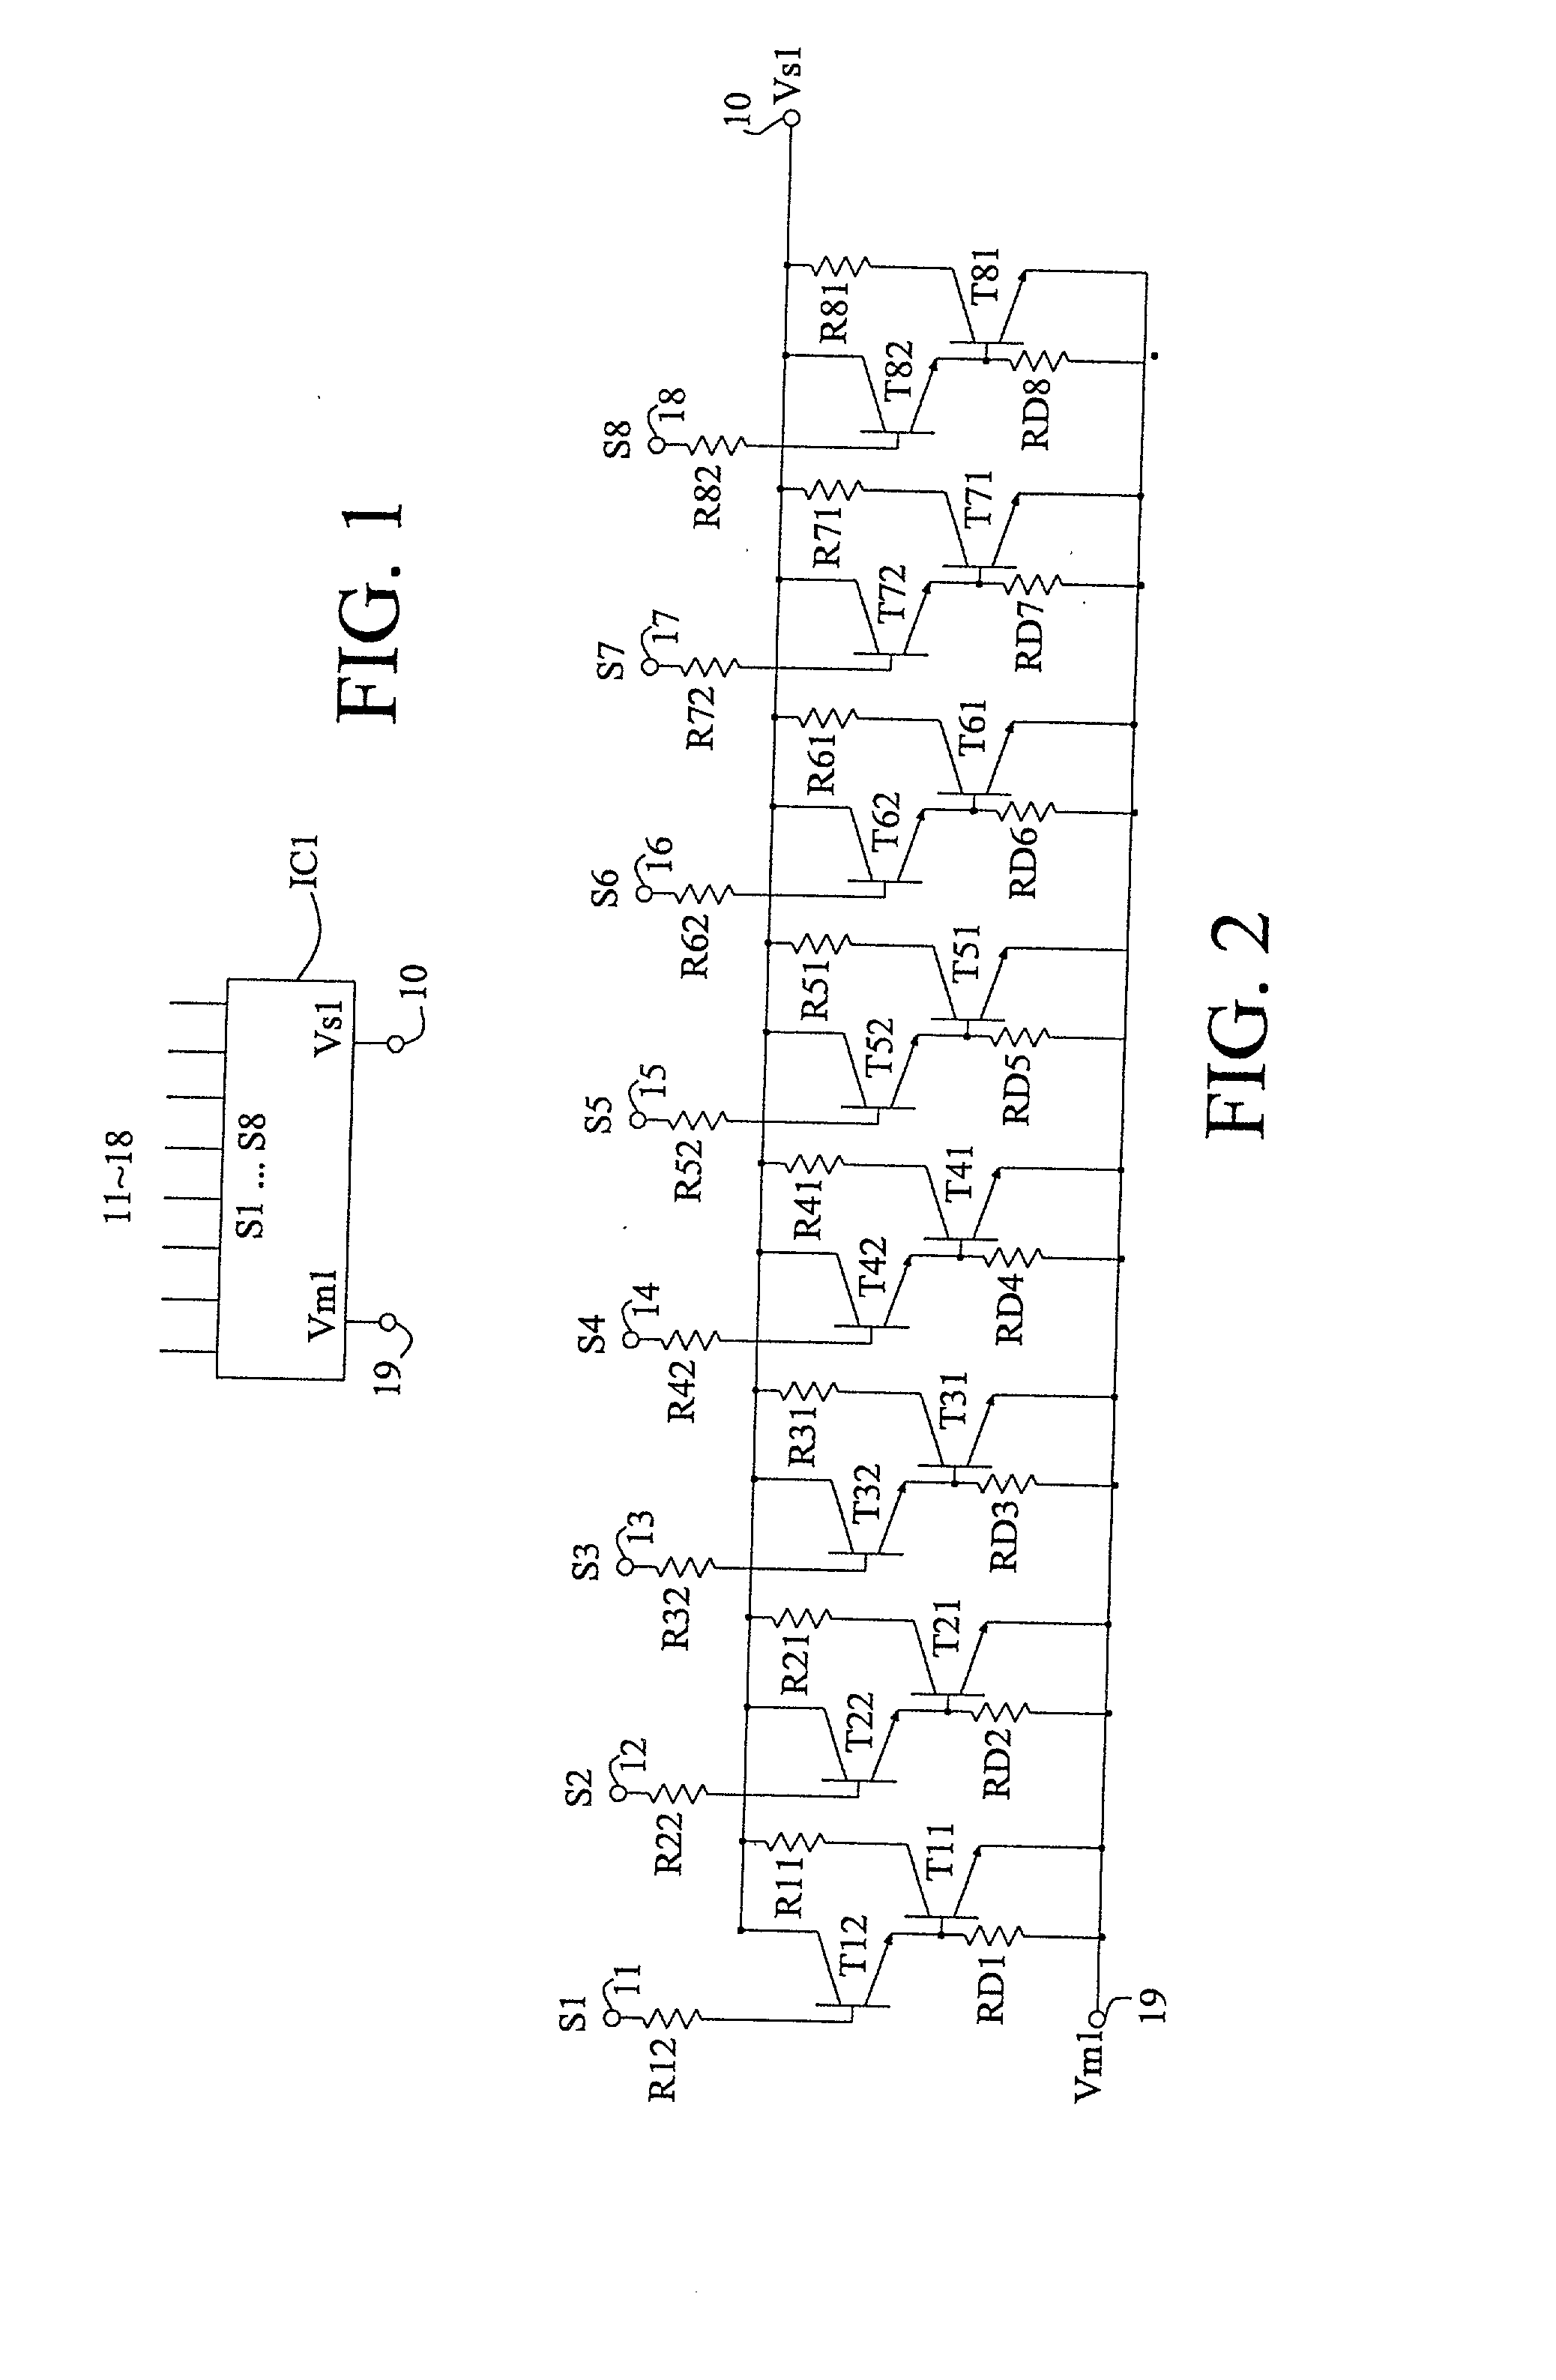 Brevet Us20020070989 Circuit For Driving Heater Of Printhead And By Using The Darlington Pair We Could Combine Two Patent Drawing